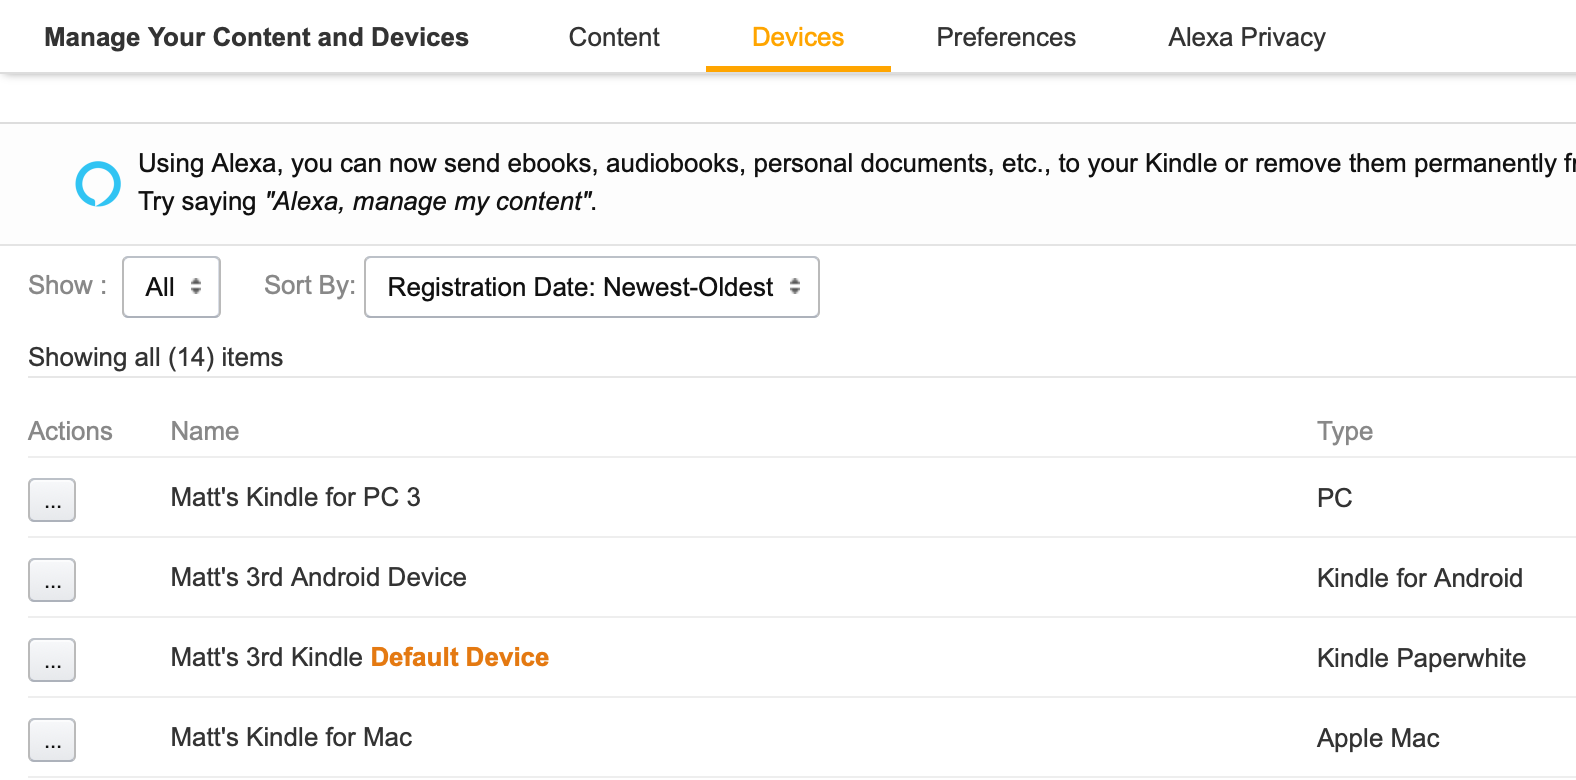 """To deauthorize a device on Amazon, for example, you have to log into your account, go to """"Your Content and Devices"""" (under the """"Your Account & Lists"""" menu at the top-right of every page), and then select the device you want to deauthorize from the Actions column."""